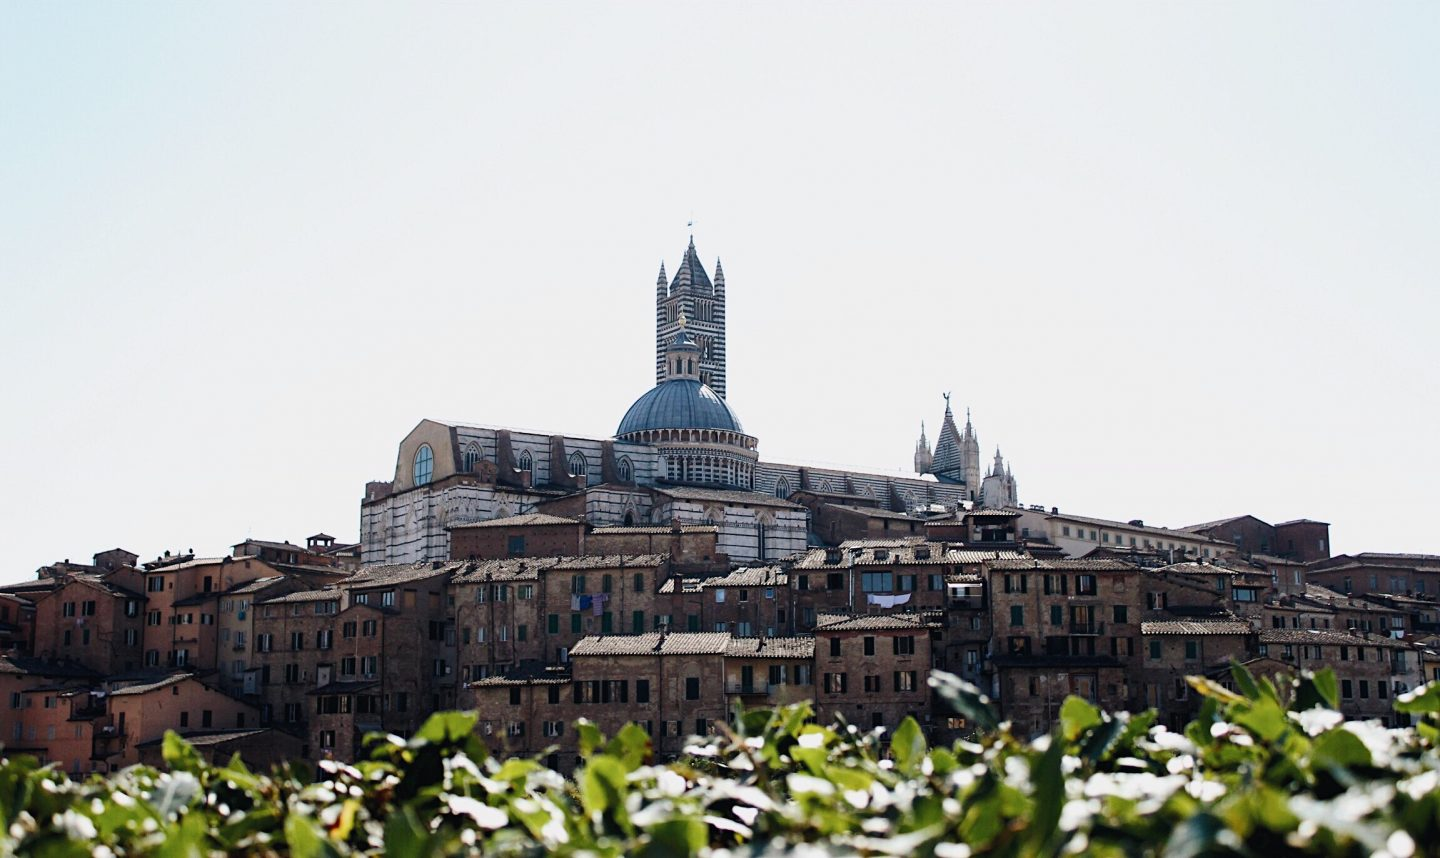 Siena is one of the cities in Italy to visit